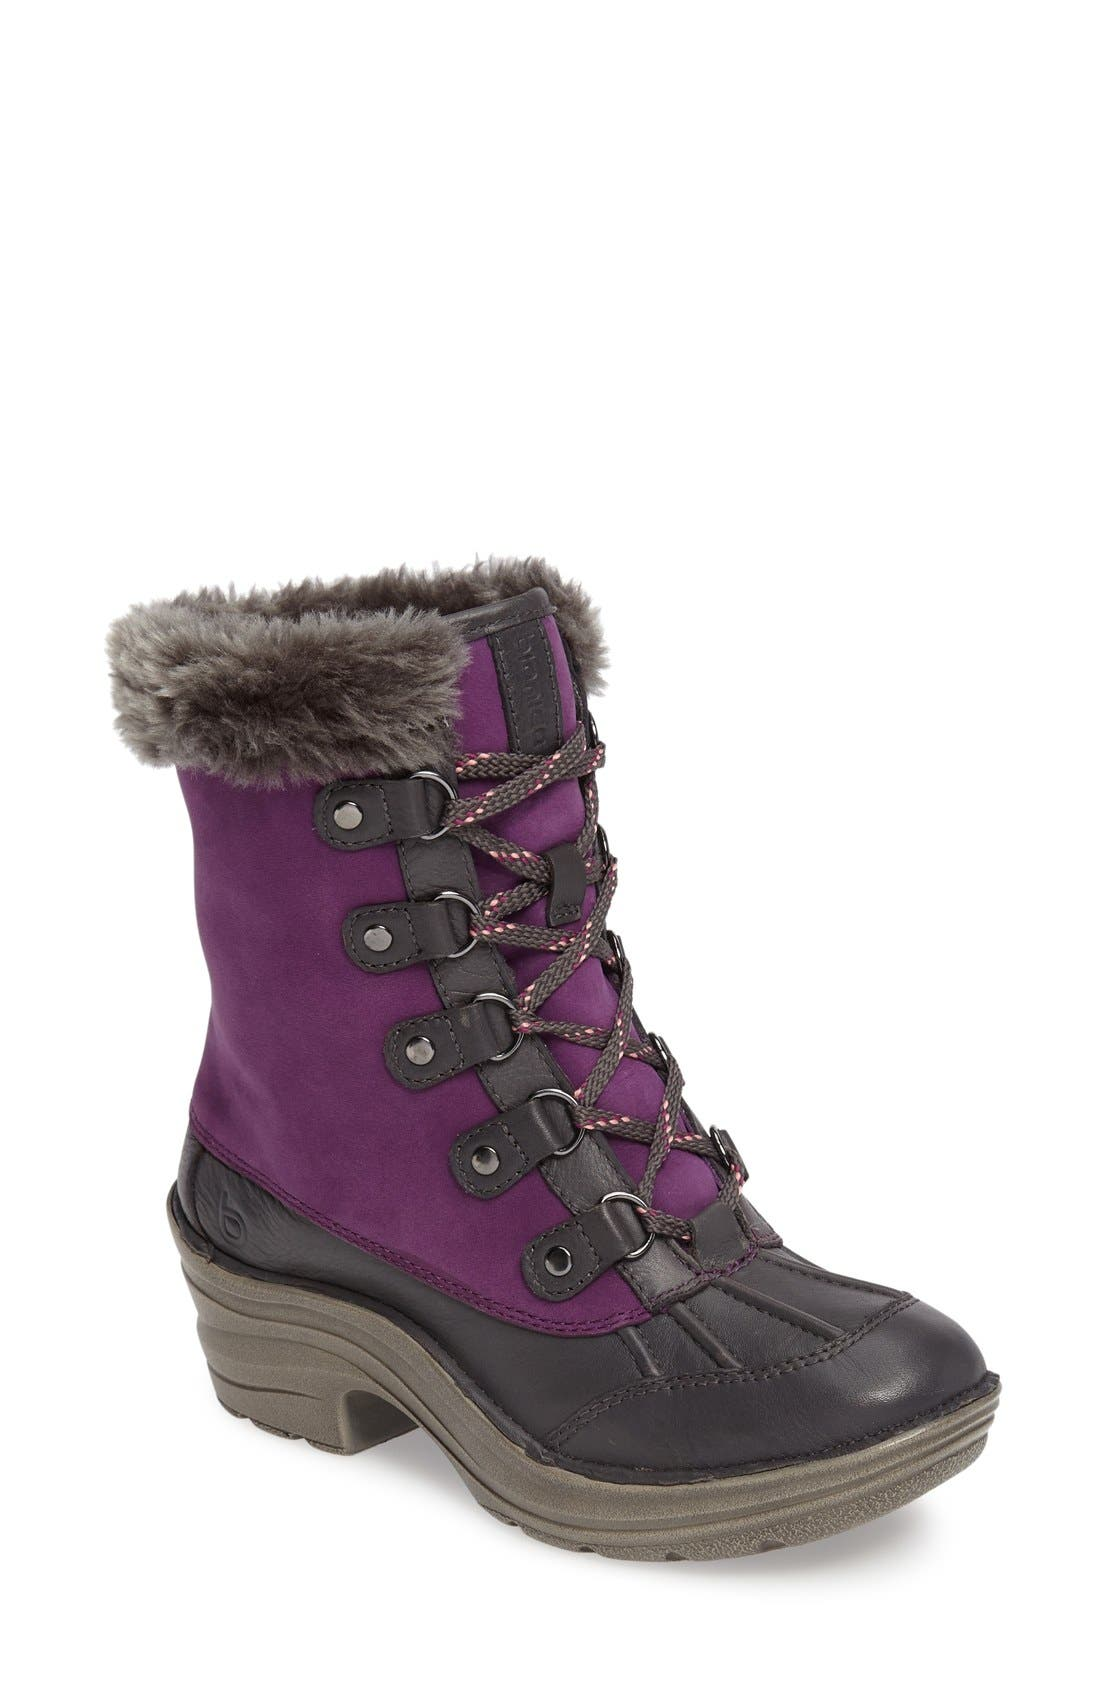 Rosemound Waterproof Boot,                         Main,                         color, Purple/ Pewter Leather